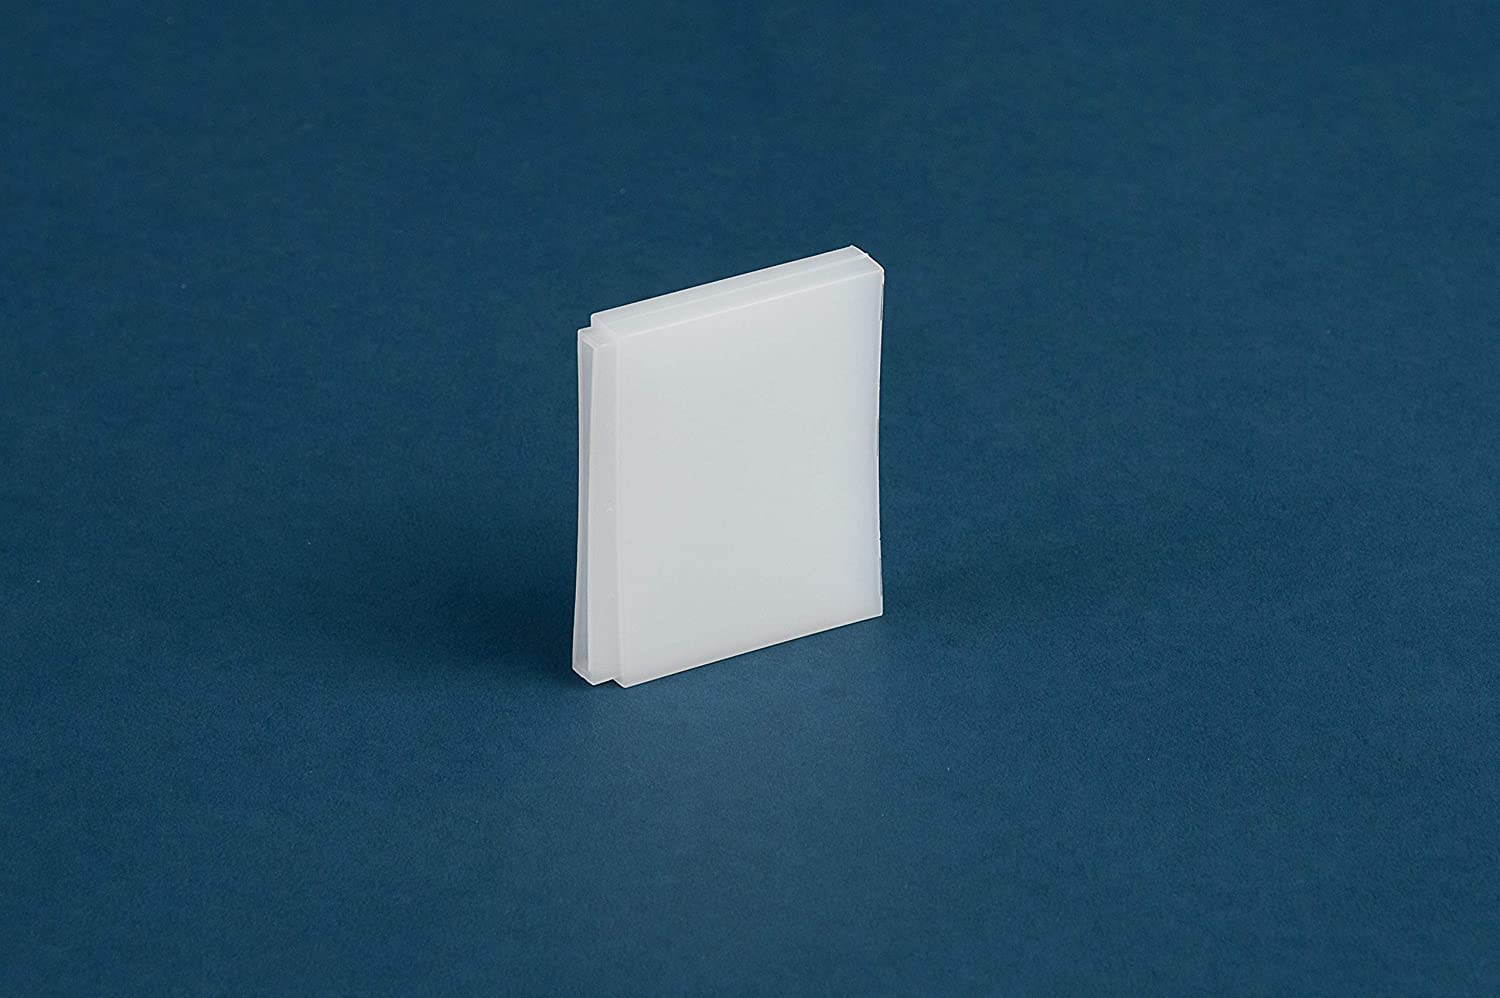 Pack of 50 Timloc 1144 Wall Weep Extensions 50mm Clear to Suit Timloc 1143 and TW1 Weep Vents